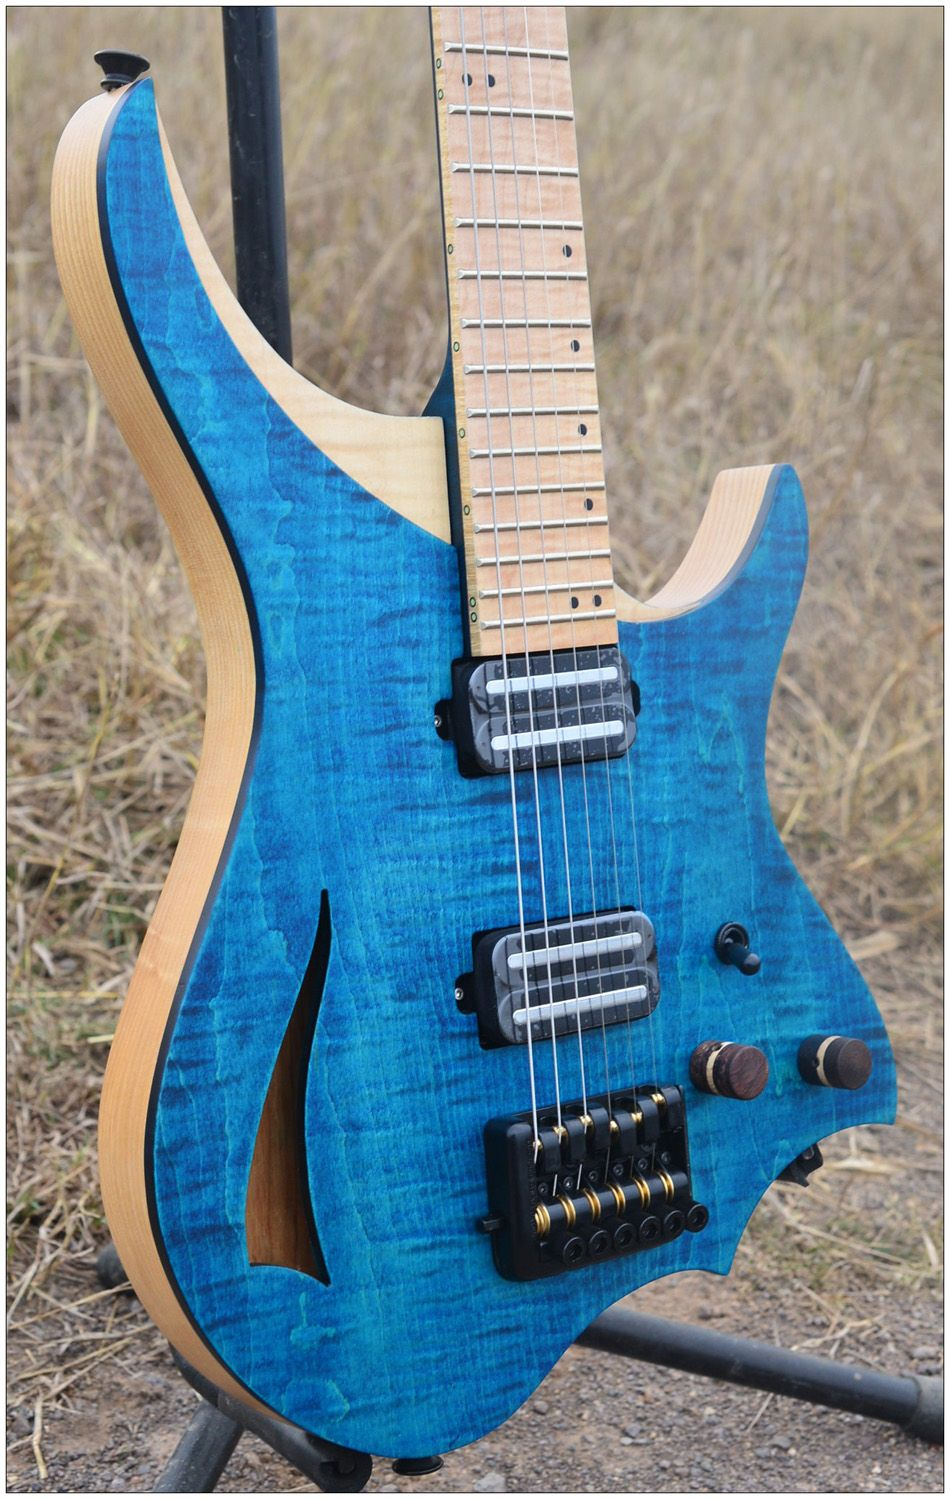 Headless Electric Guitar steinberger style Model Purple blue color 6mm Flame maple top and Neck in stock Guitar free shipping